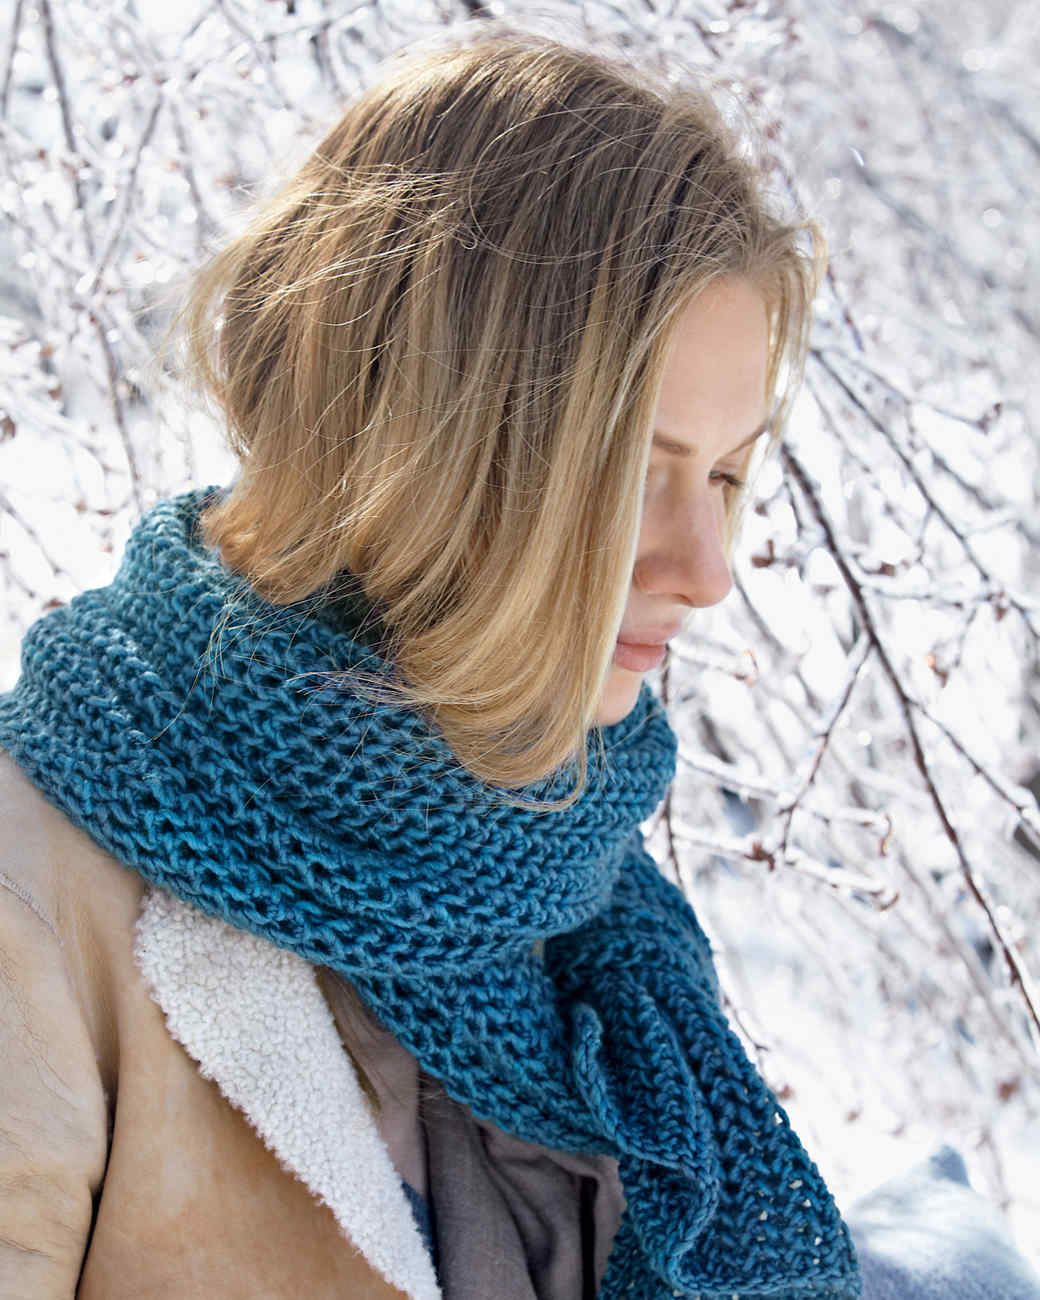 Scarf Knitting Styles : Knitted scarves to feel cozy and comfortable martha